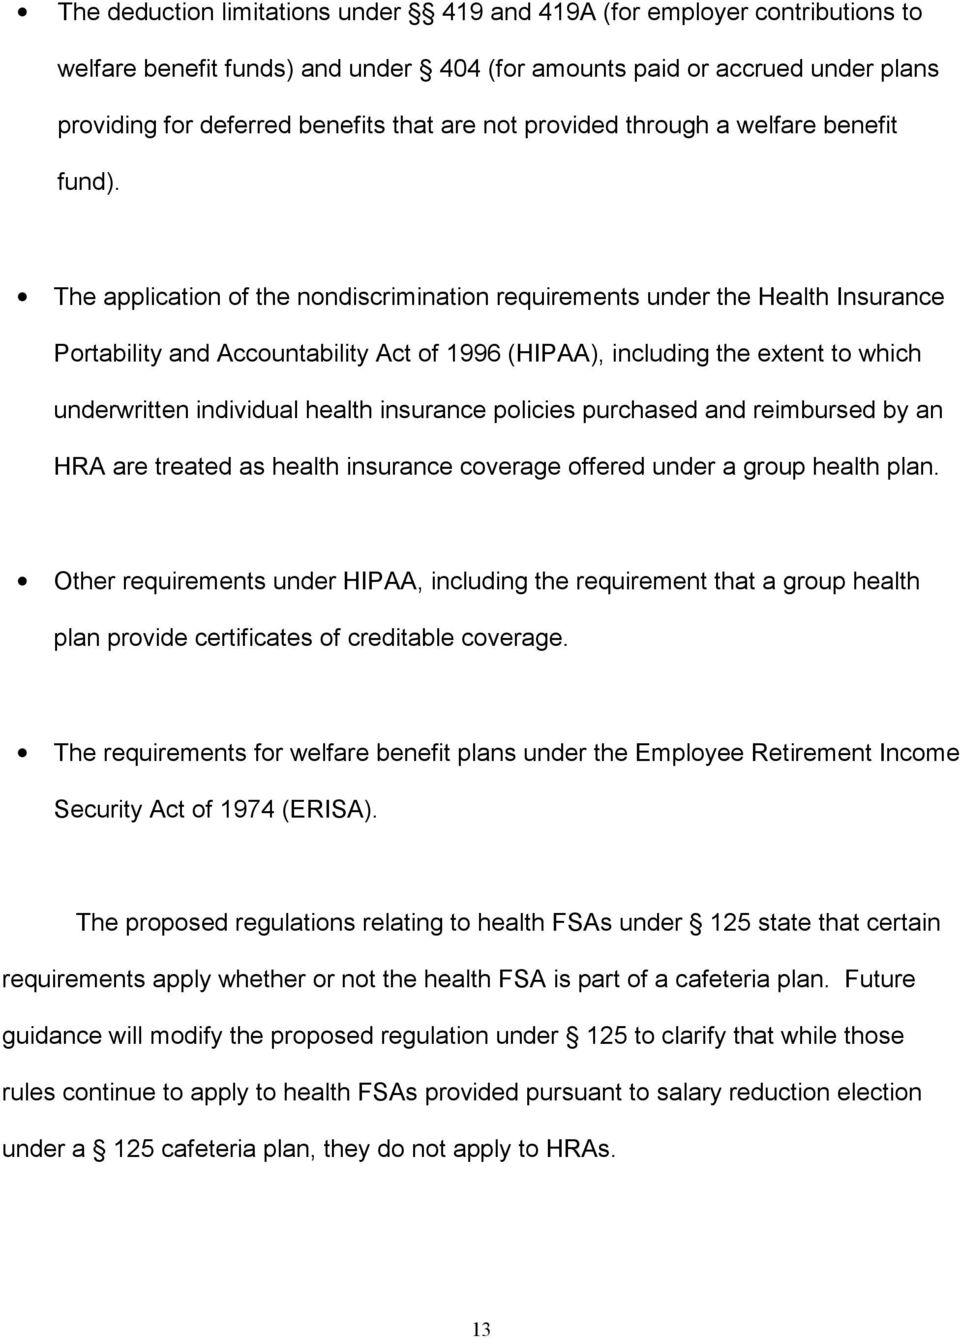 The application of the nondiscrimination requirements under the Health Insurance Portability and Accountability Act of 1996 (HIPAA), including the extent to which underwritten individual health